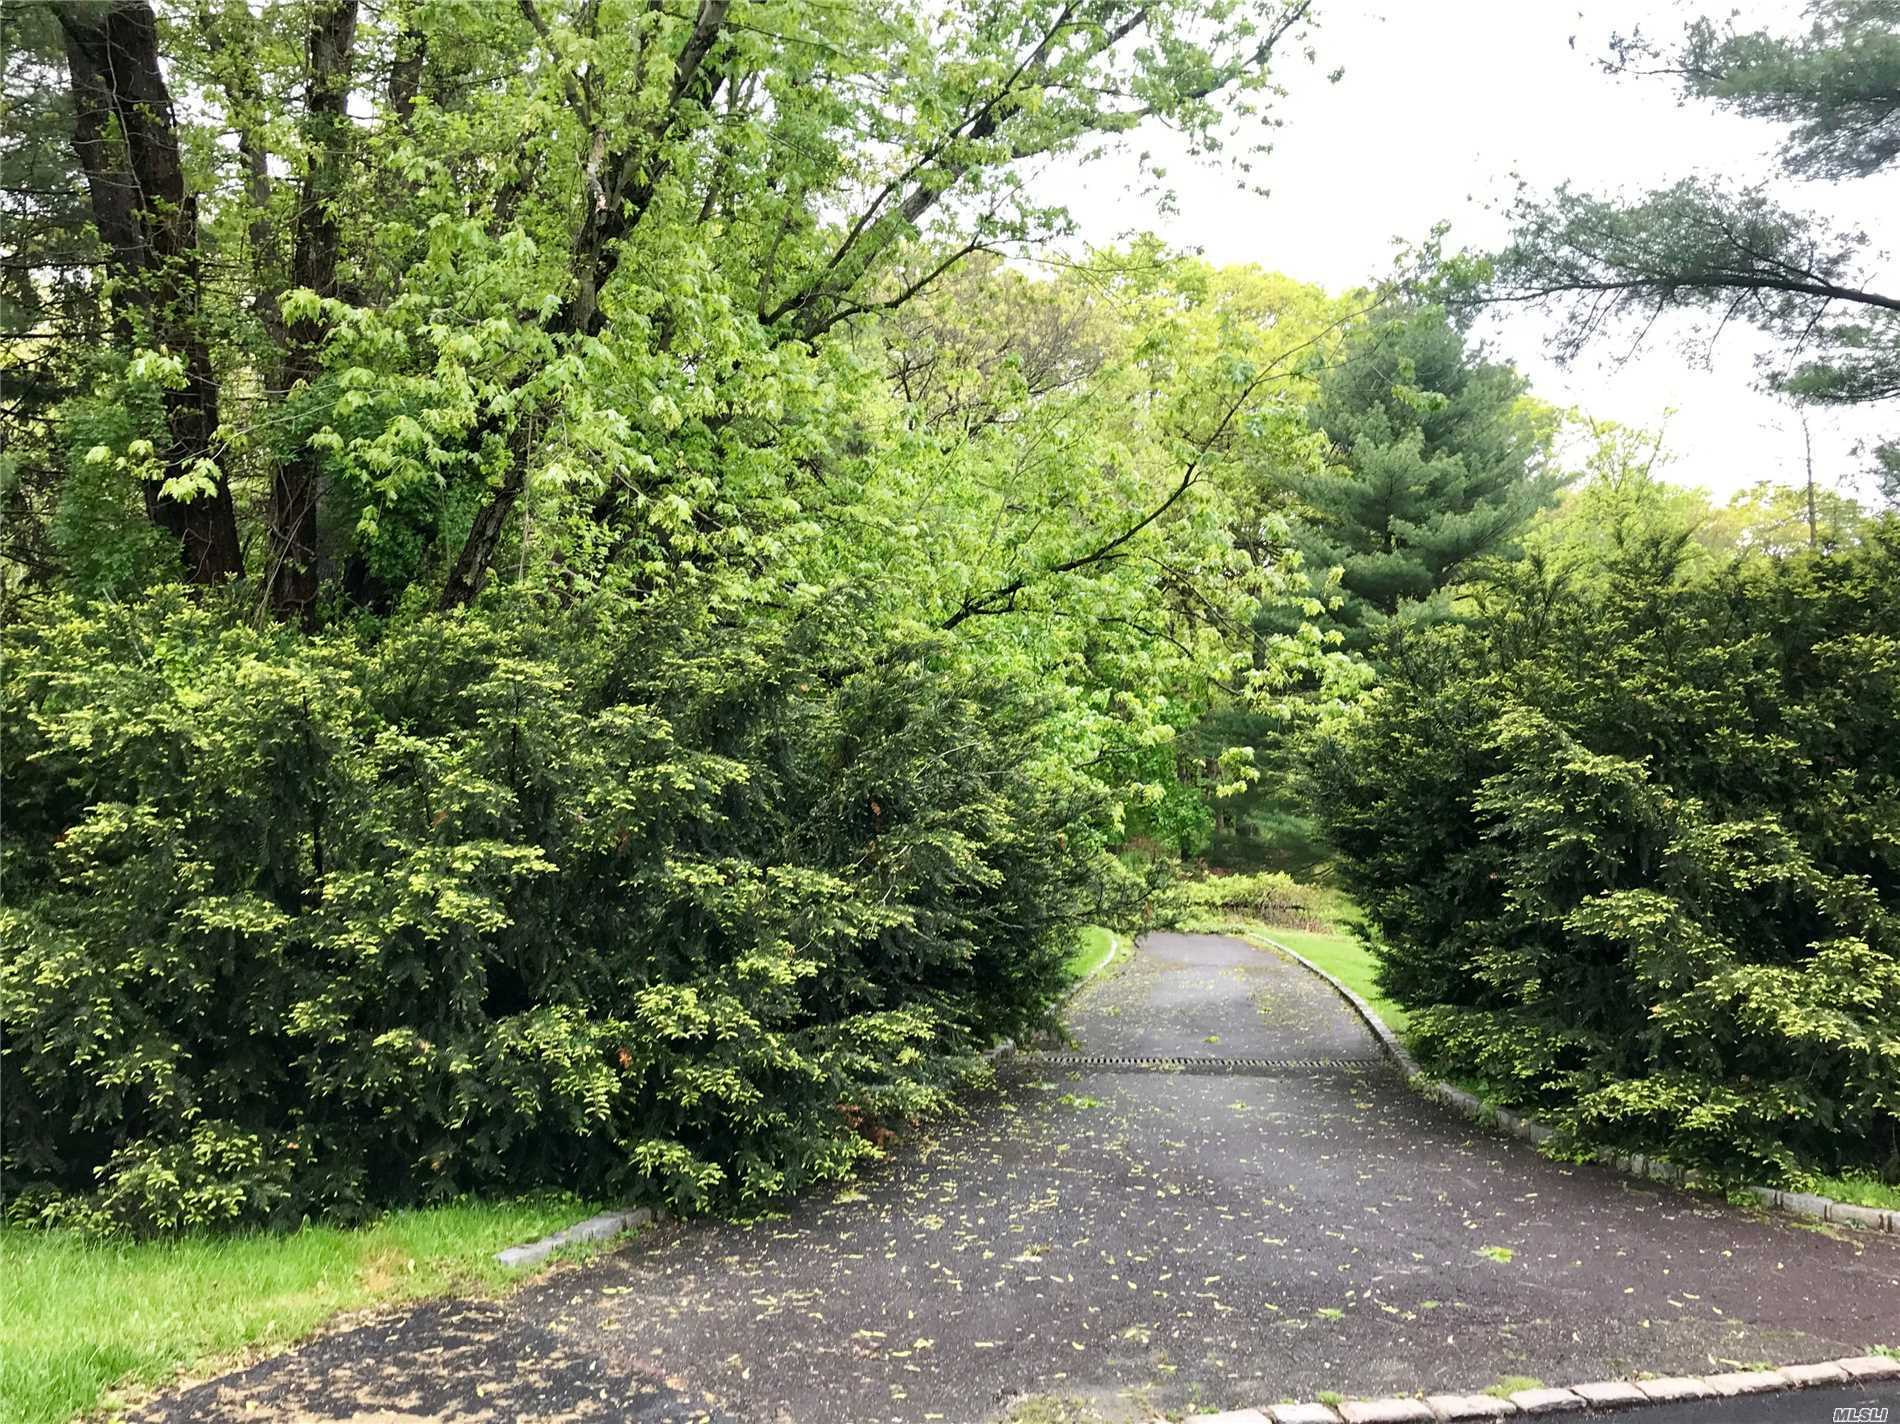 Magnificent 2 Acre Buildable Lot Situated On One Of The Most Private And Quietest Cul De Sacs In Brookville. Located Within The Jericho School District, Robert Seaman Elementary.